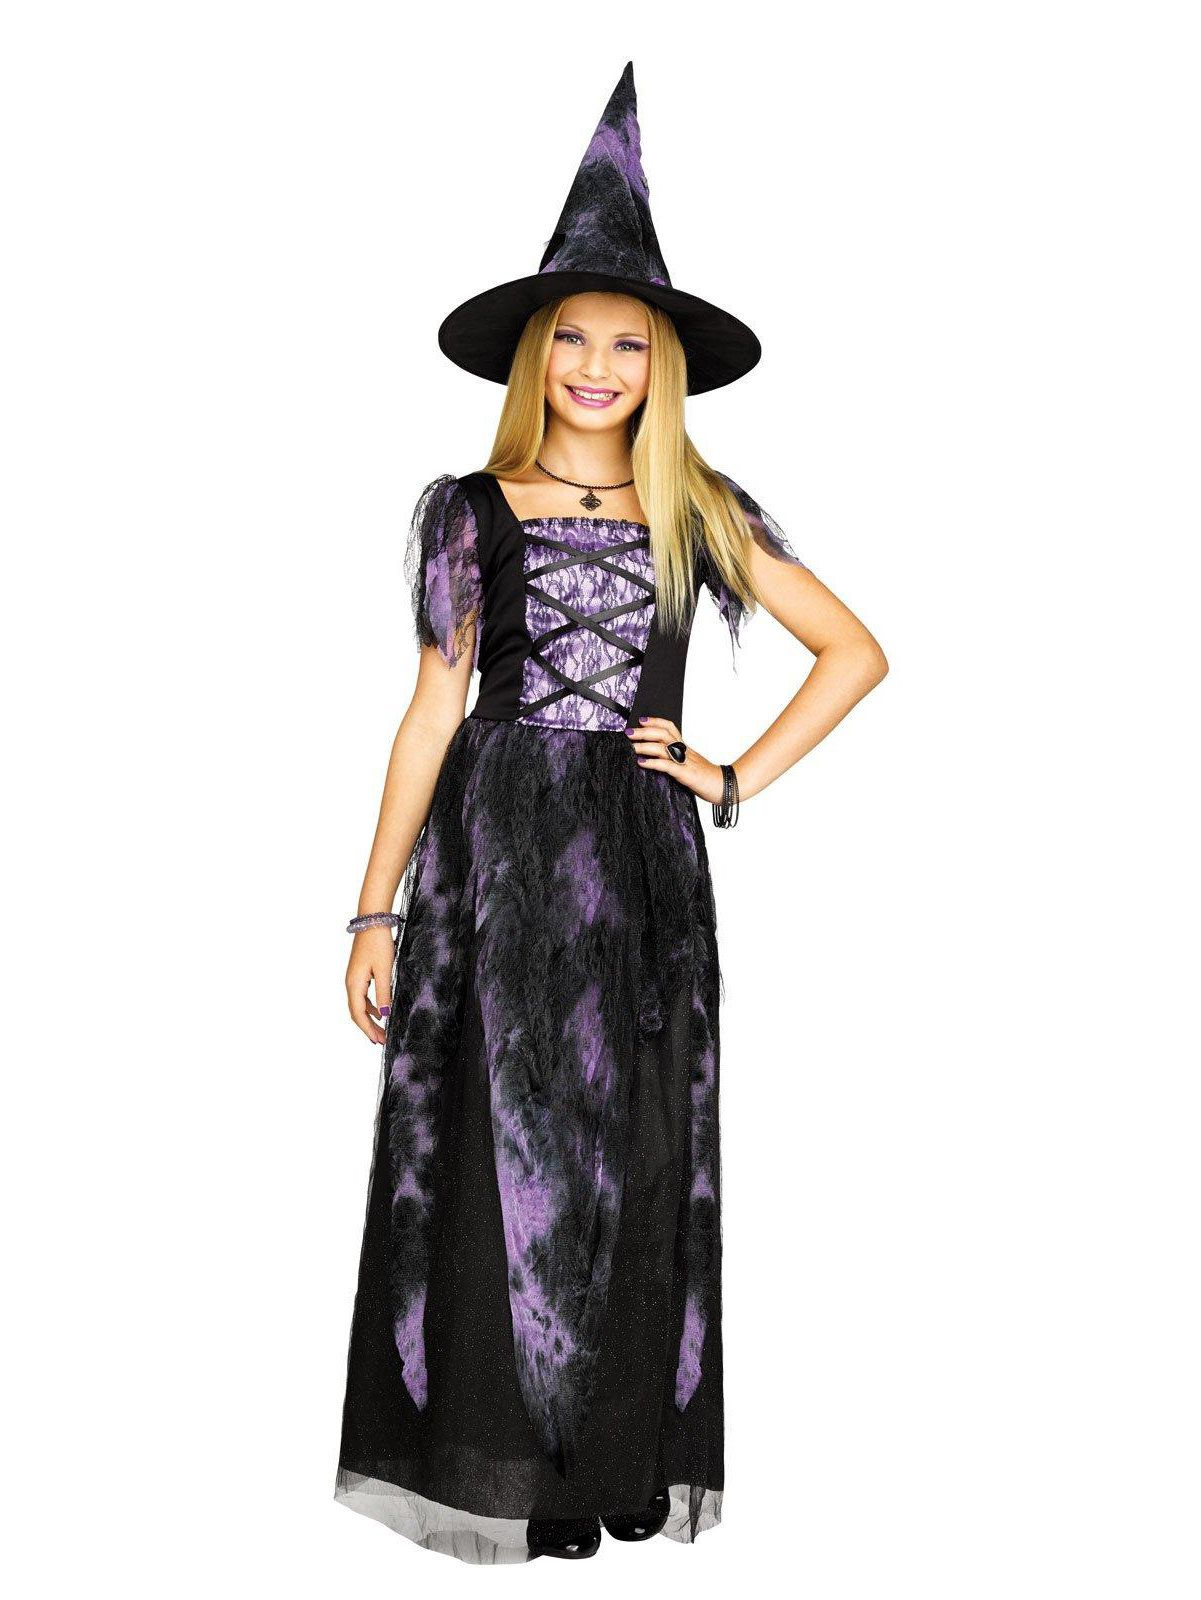 Starlight Witch Child Costume Girls Costumes For 2019 Wholesale Halloween Costumes